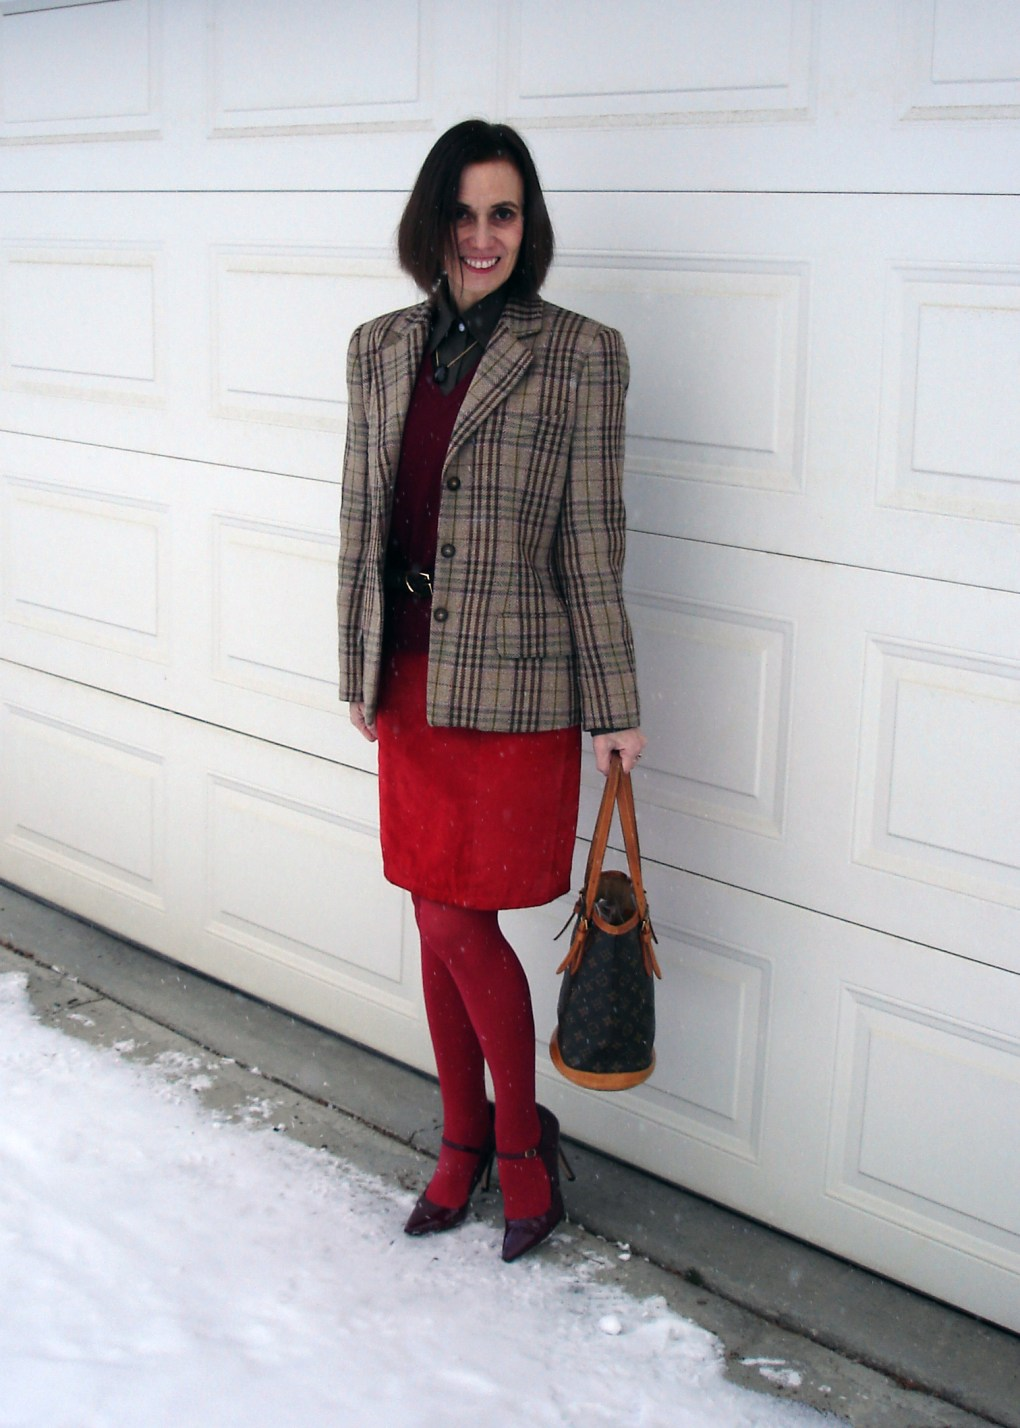 #styleover50 woman in work outfit styled in holiday vibe